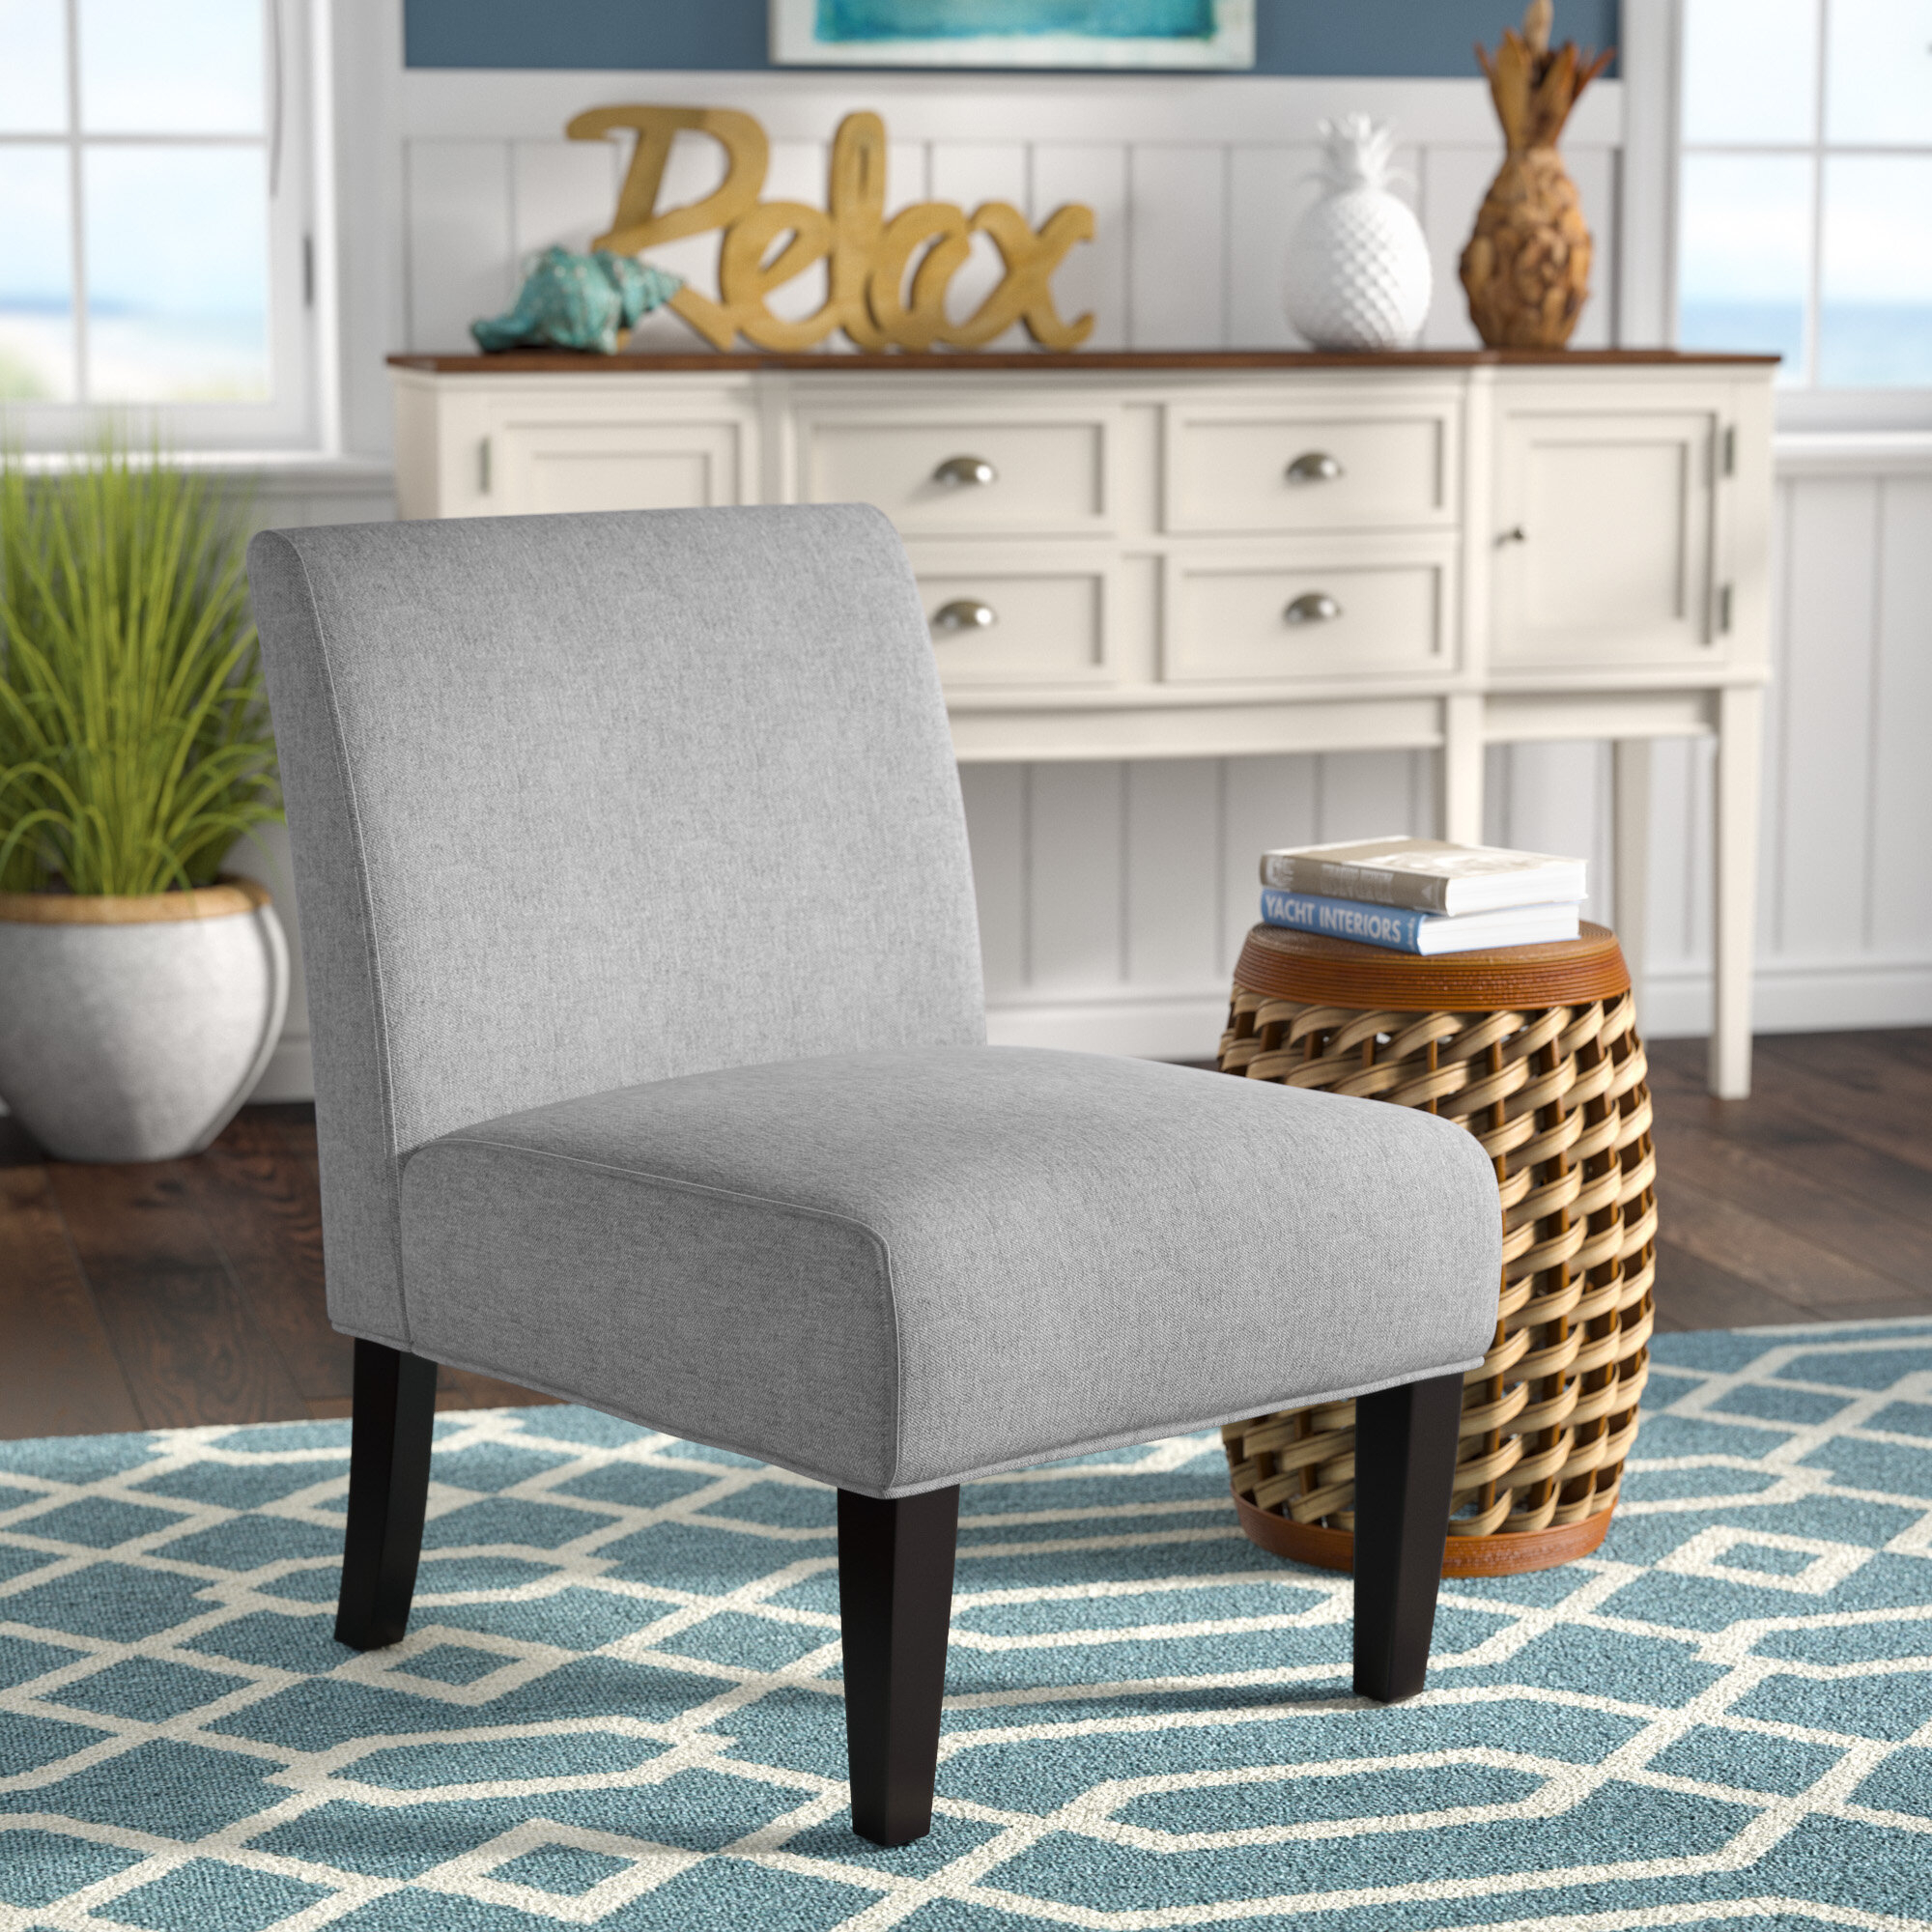 Slipper Chairs | Wayfair For Alush Accent Slipper Chairs (Set Of 2) (View 5 of 15)